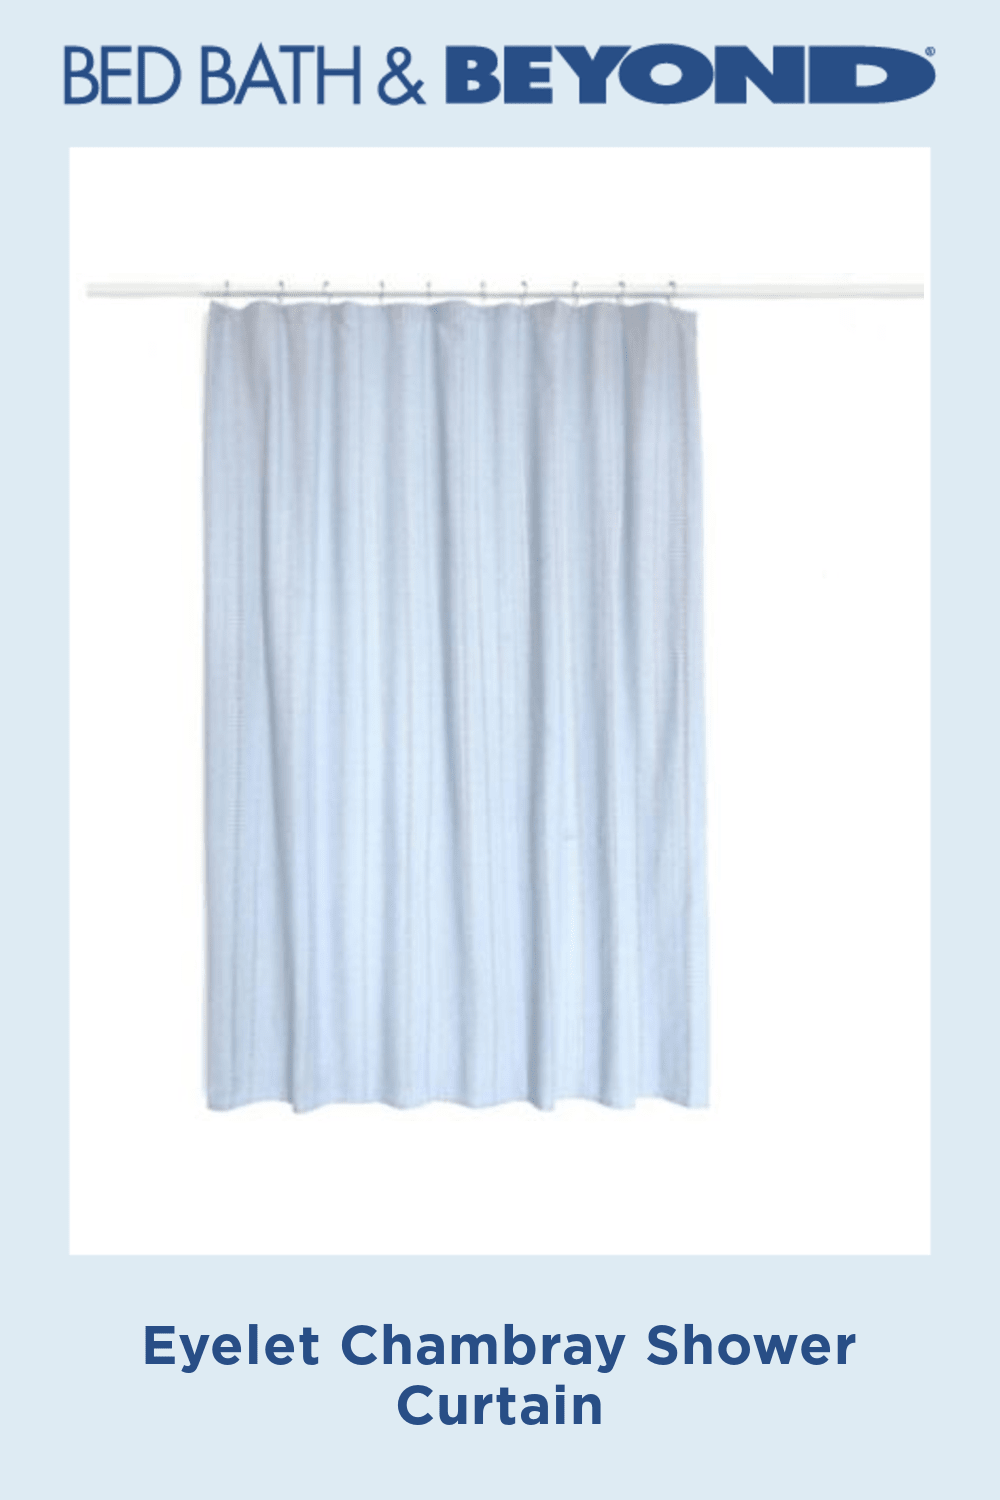 Eyelet Chambray Shower Curtain In 2020 Shower Curtain Curtains